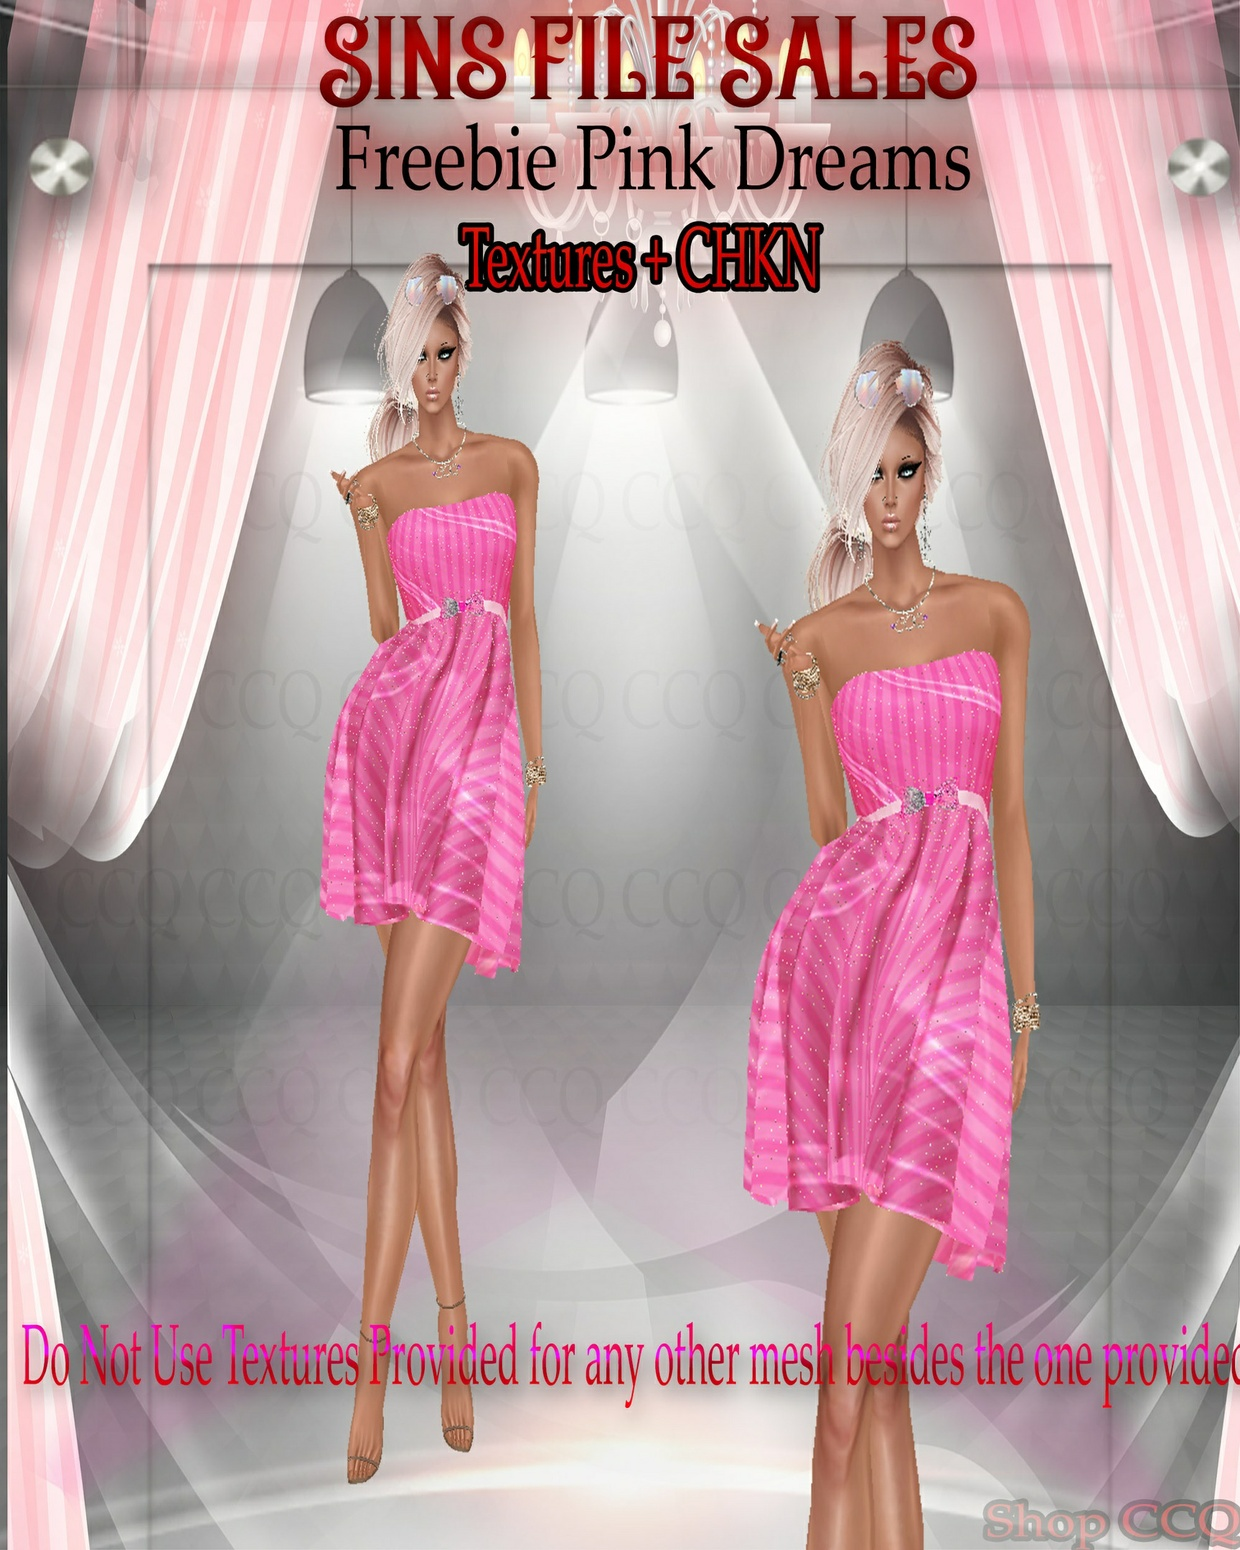 ♥Freebie Pink Dreams*CKHN